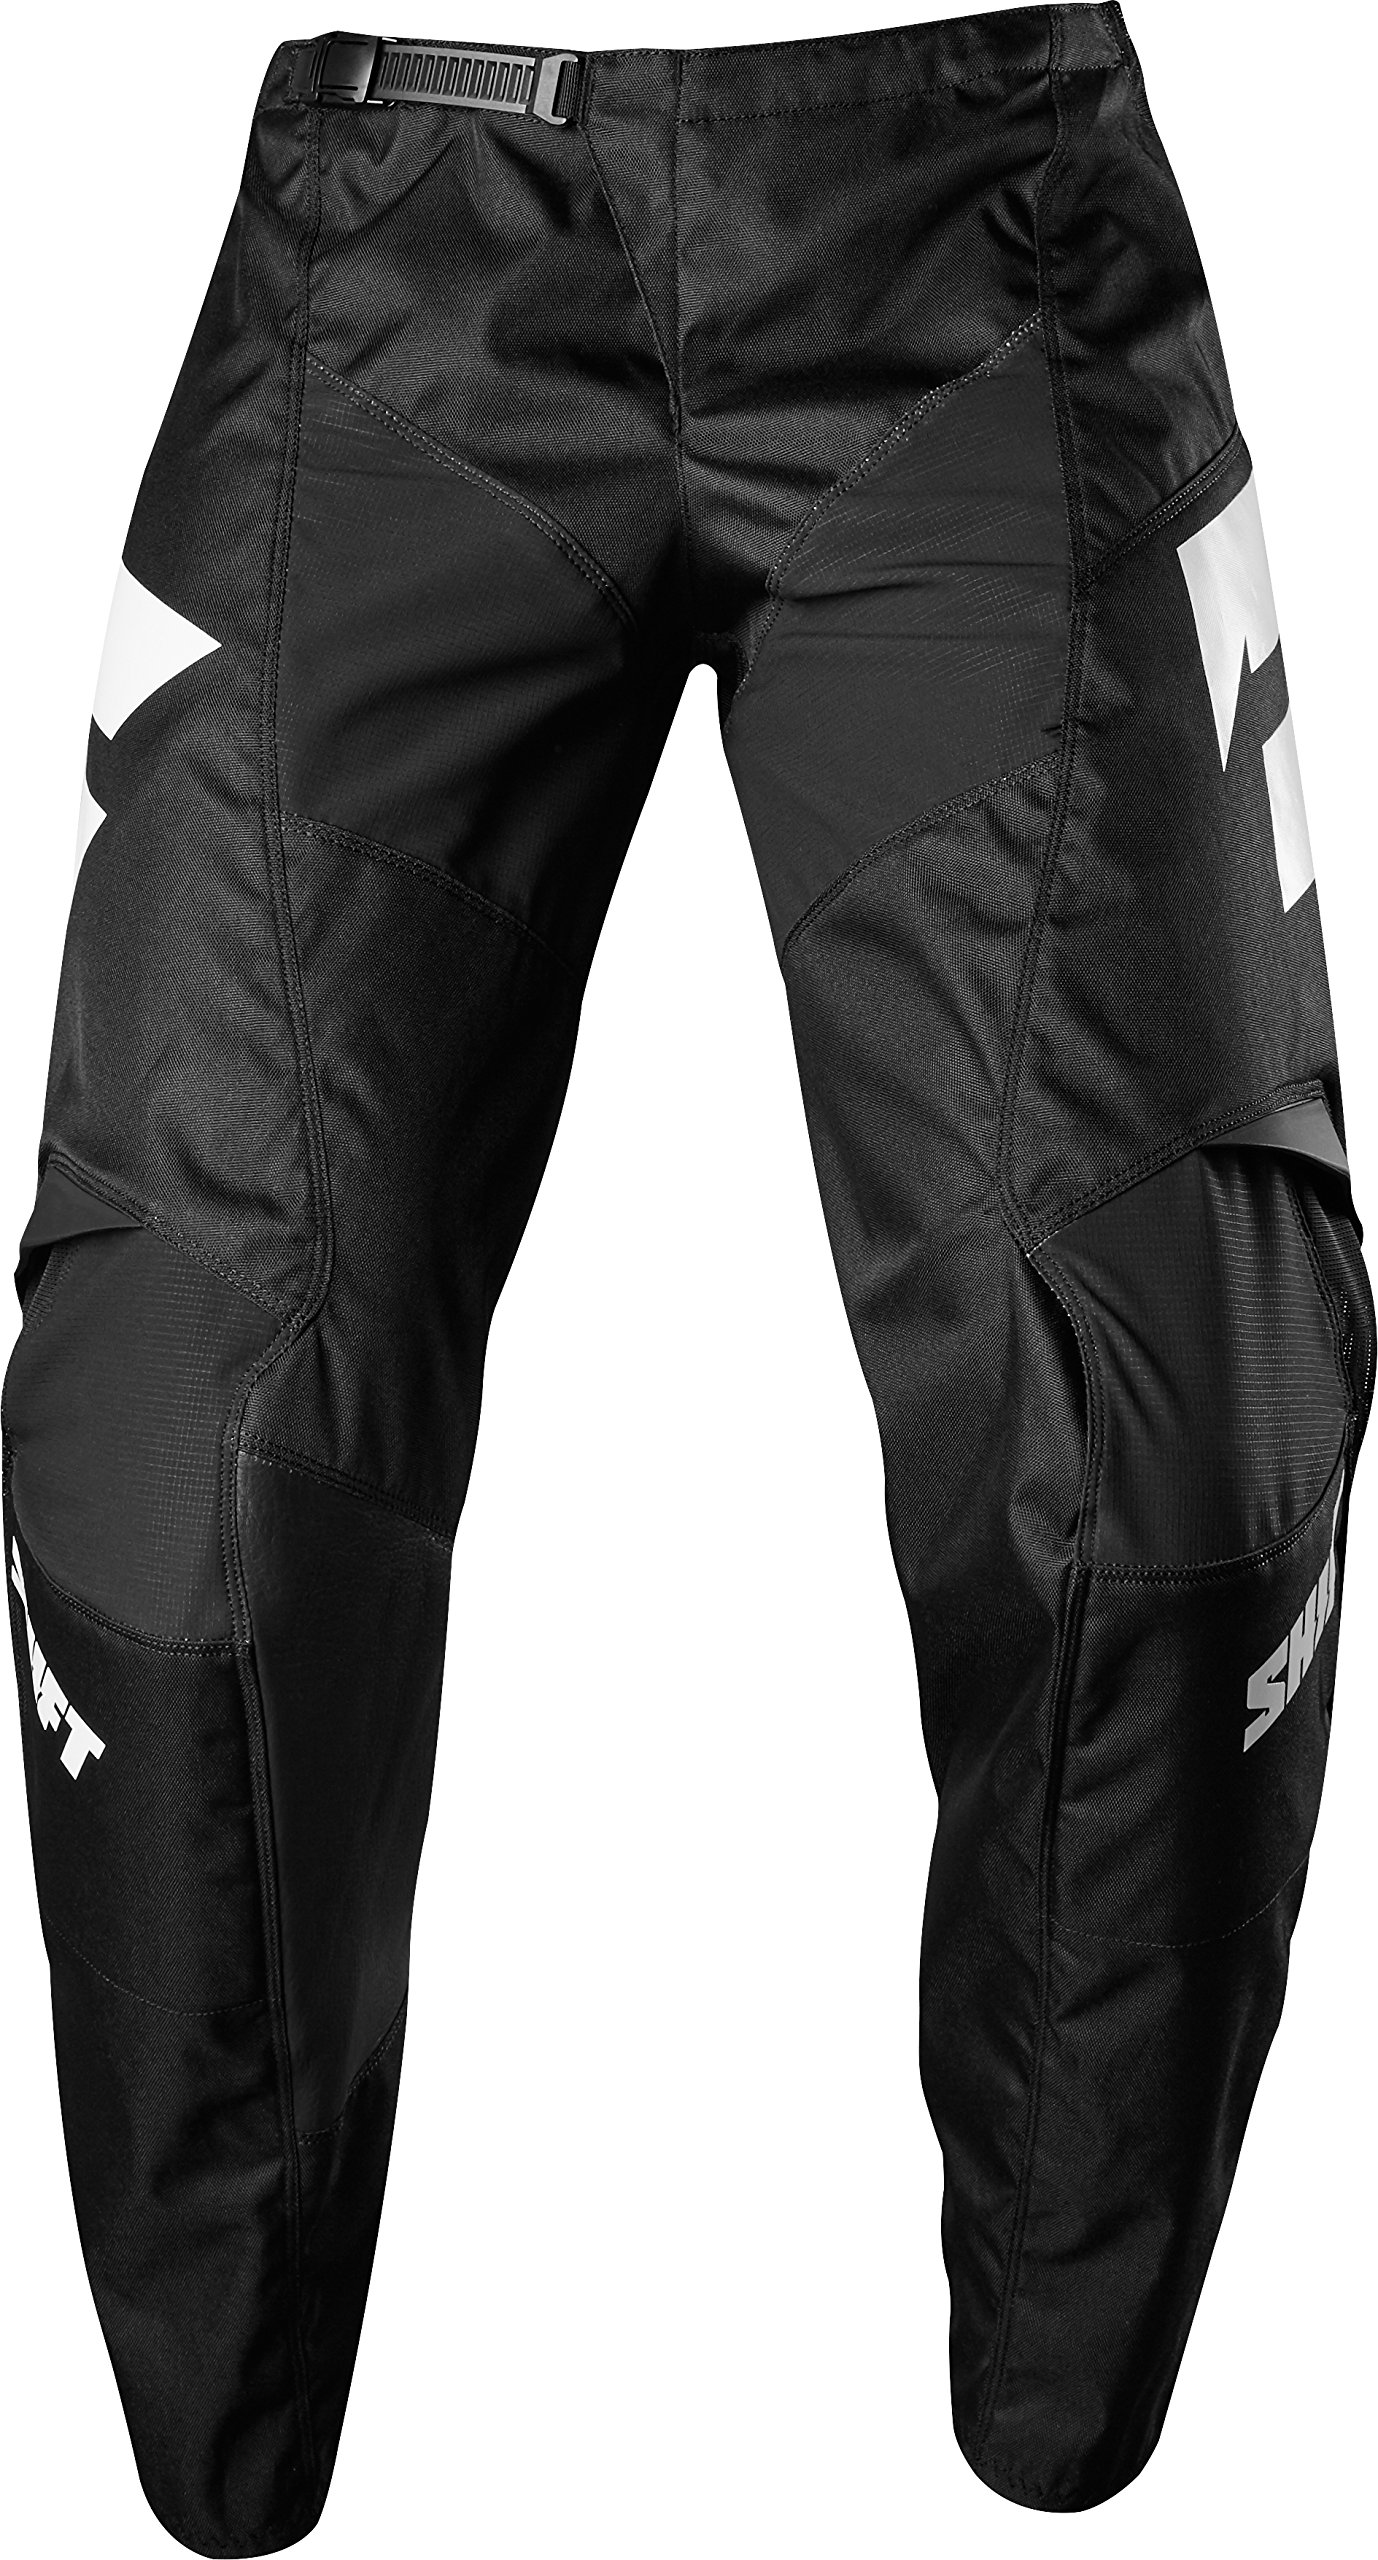 Shift MX - White Label Ninety Seven Black Jersey/ Pant Combo - Size X-LARGE/ 34W